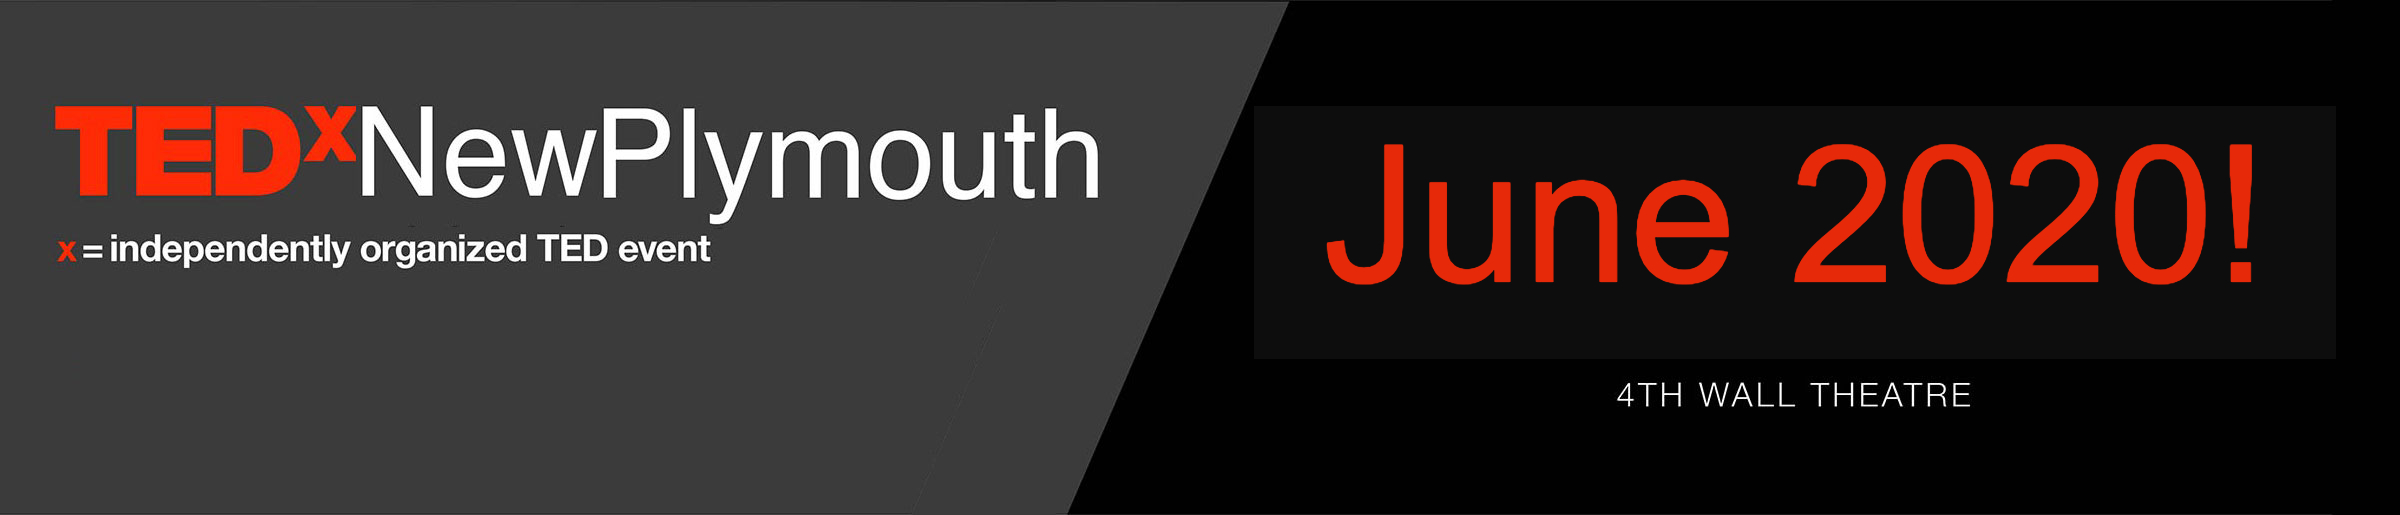 TEDxNewPlymouth - June 2020! 4th Wall Theatre - Buy Tickets Now.